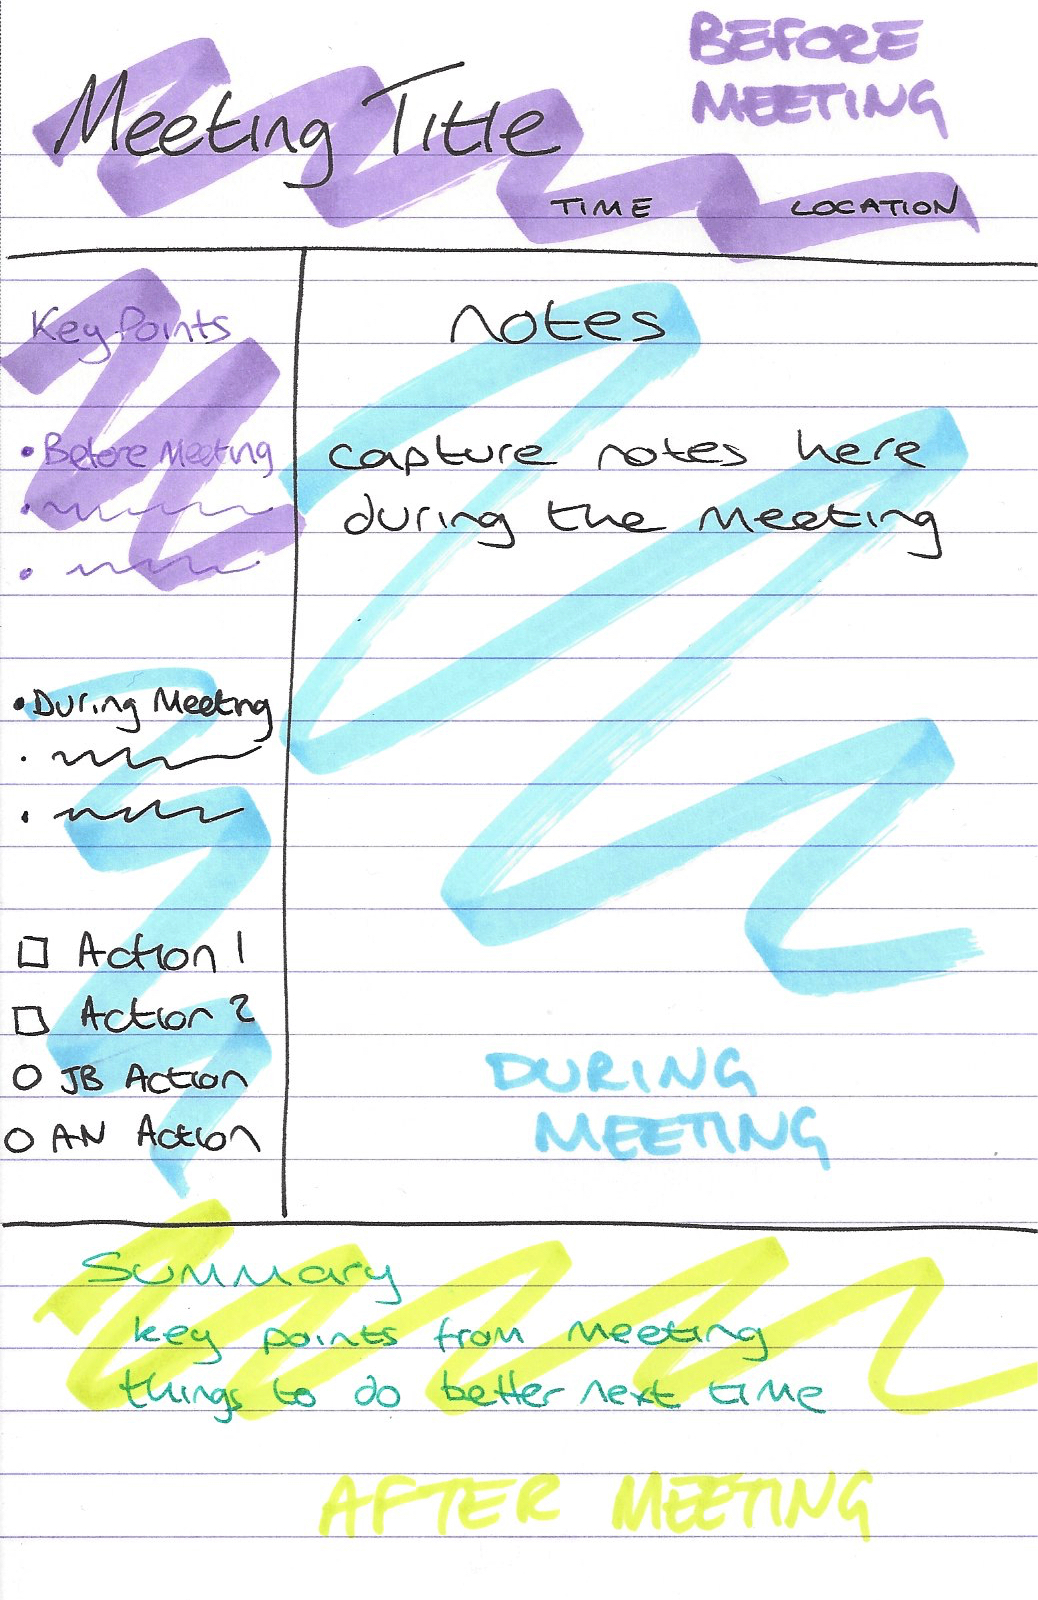 how to take effective meeting notes